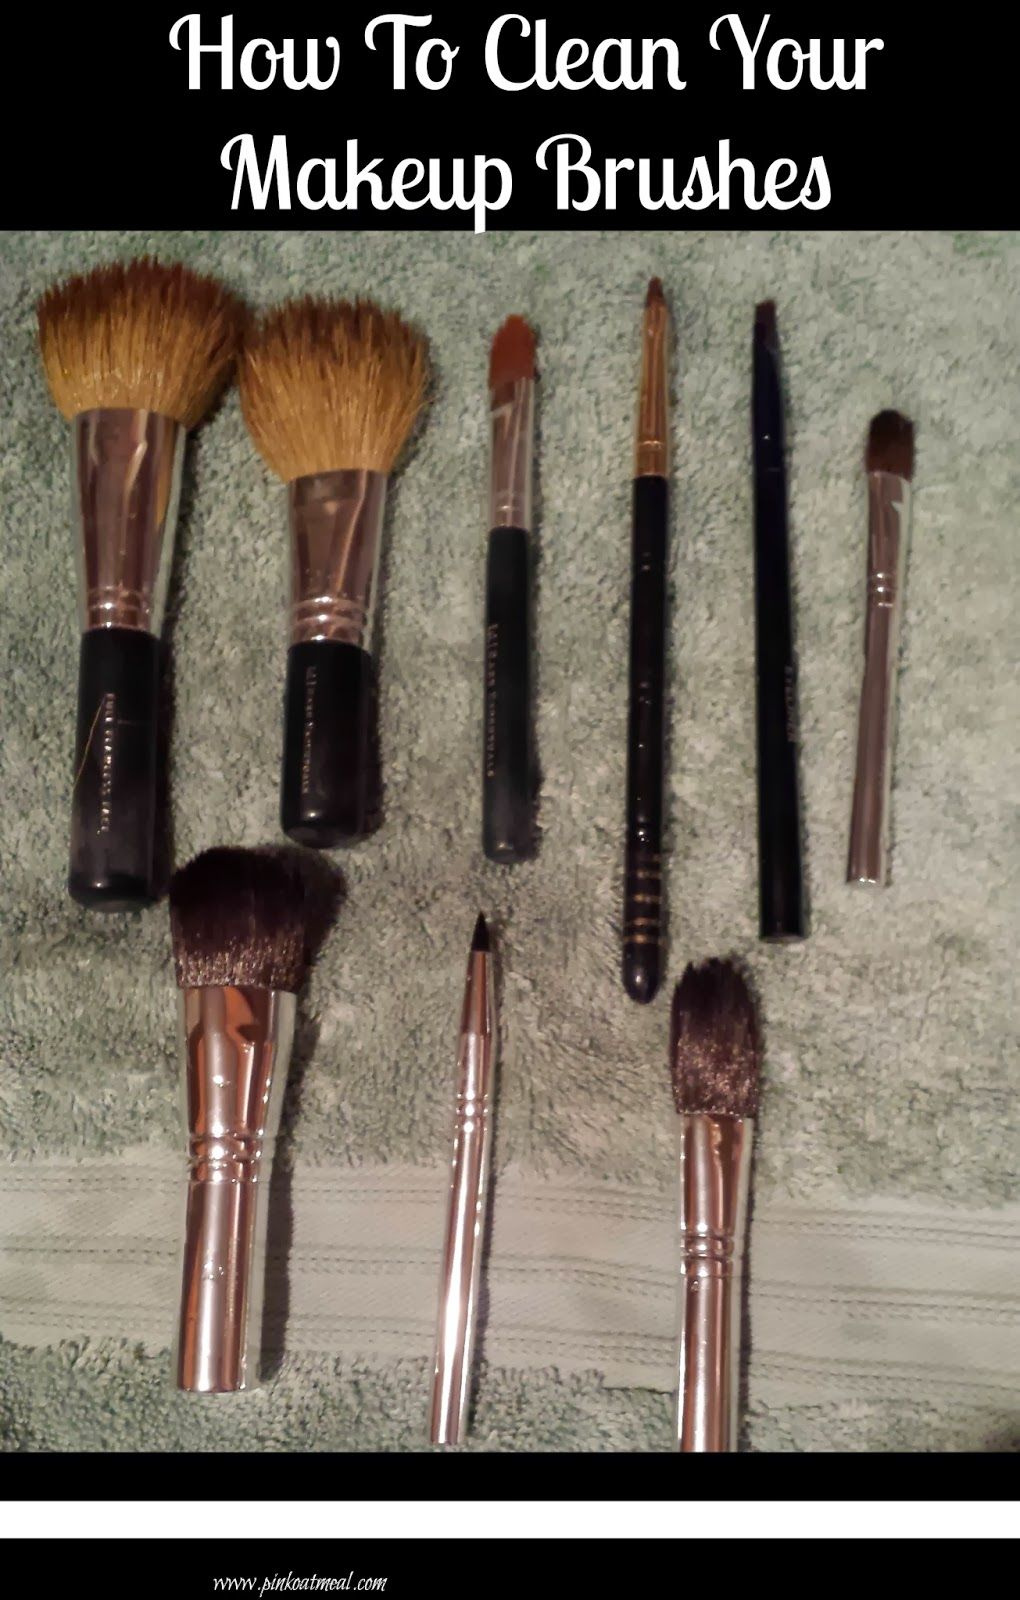 How To Clean Your Makeup Brushes Diy makeup brush, How